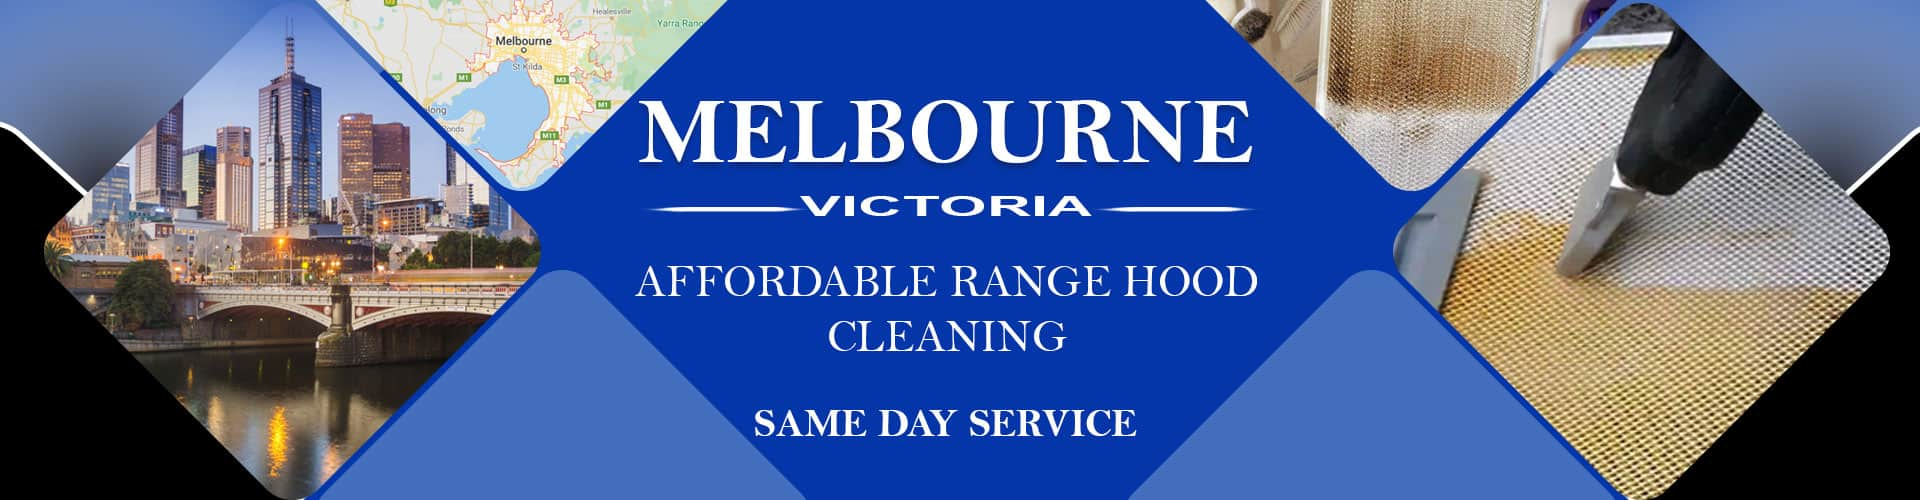 Affordable Range Hood Cleaning in Melbourne